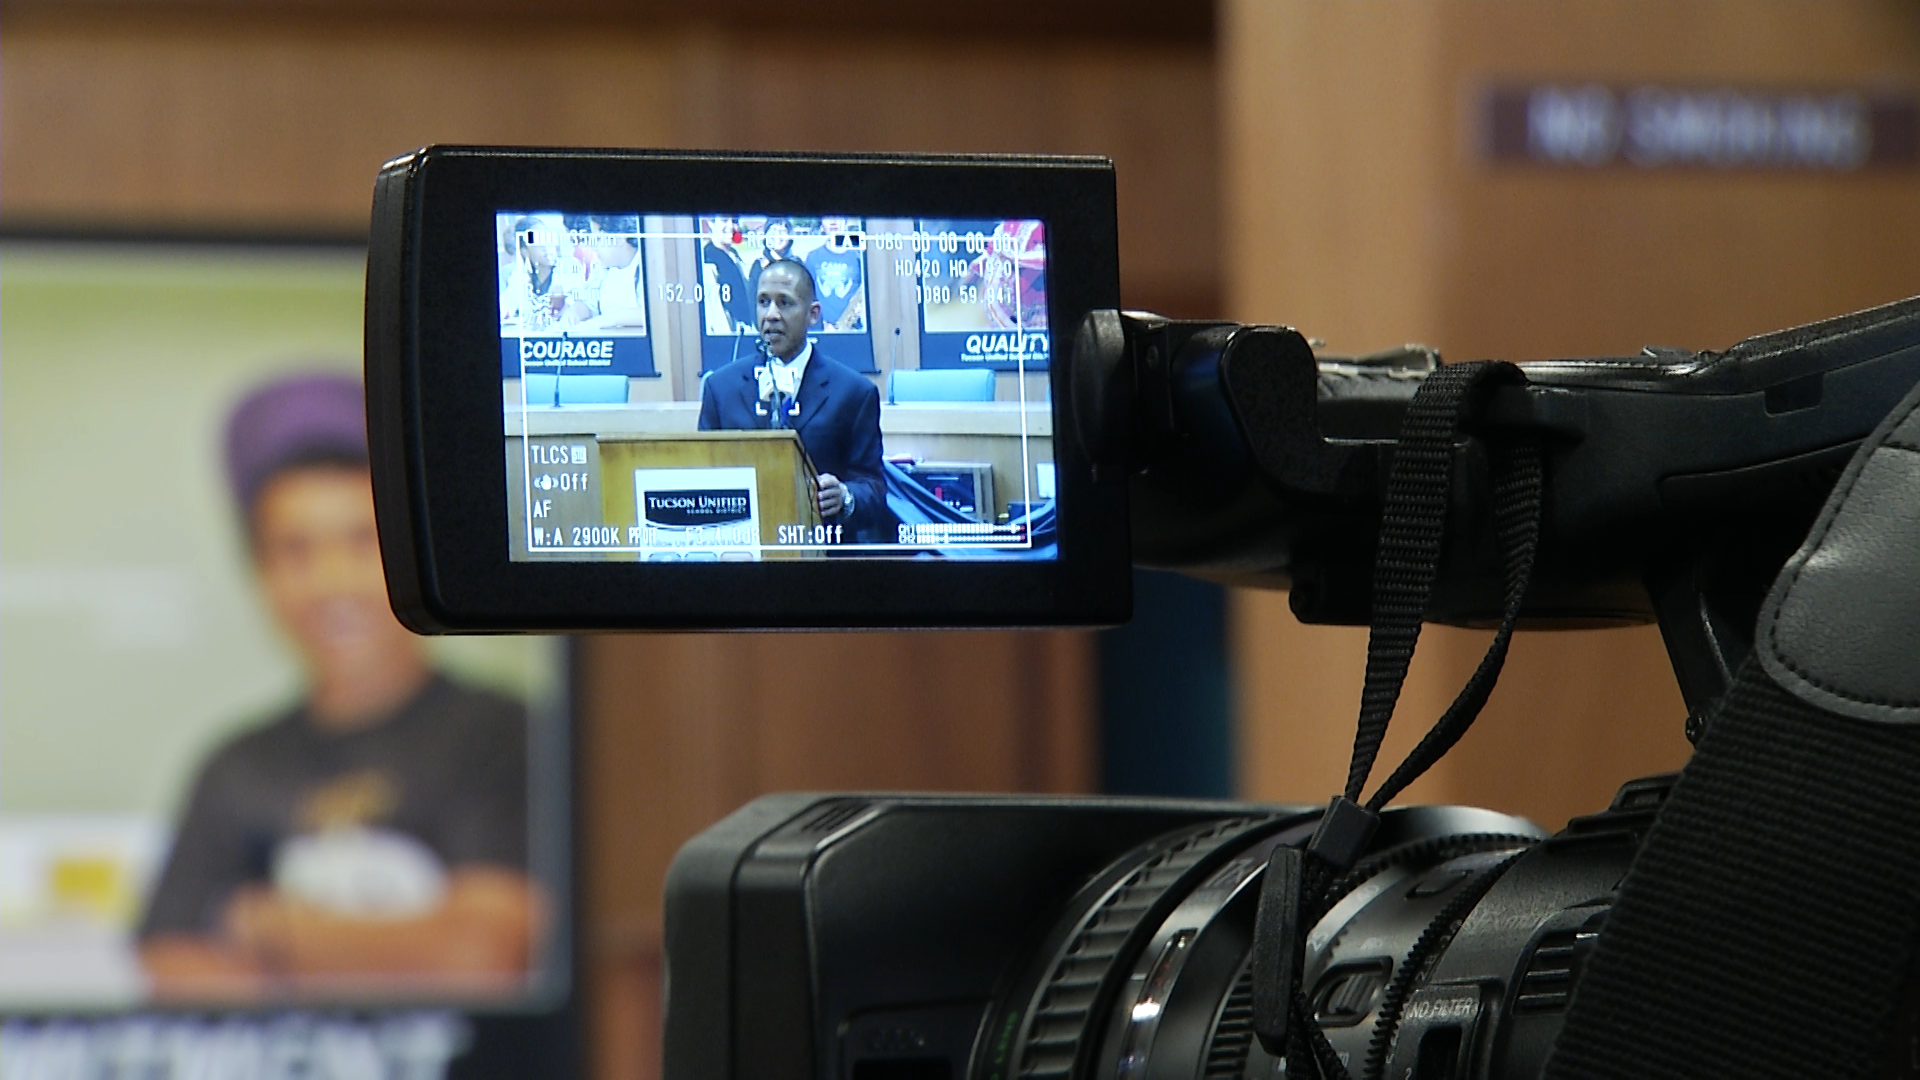 A camera's viewfinder captures Tucson Unified School District Superintendent Gabriel Trujillo speaking to reporters at a news conference at the district's headquarters.